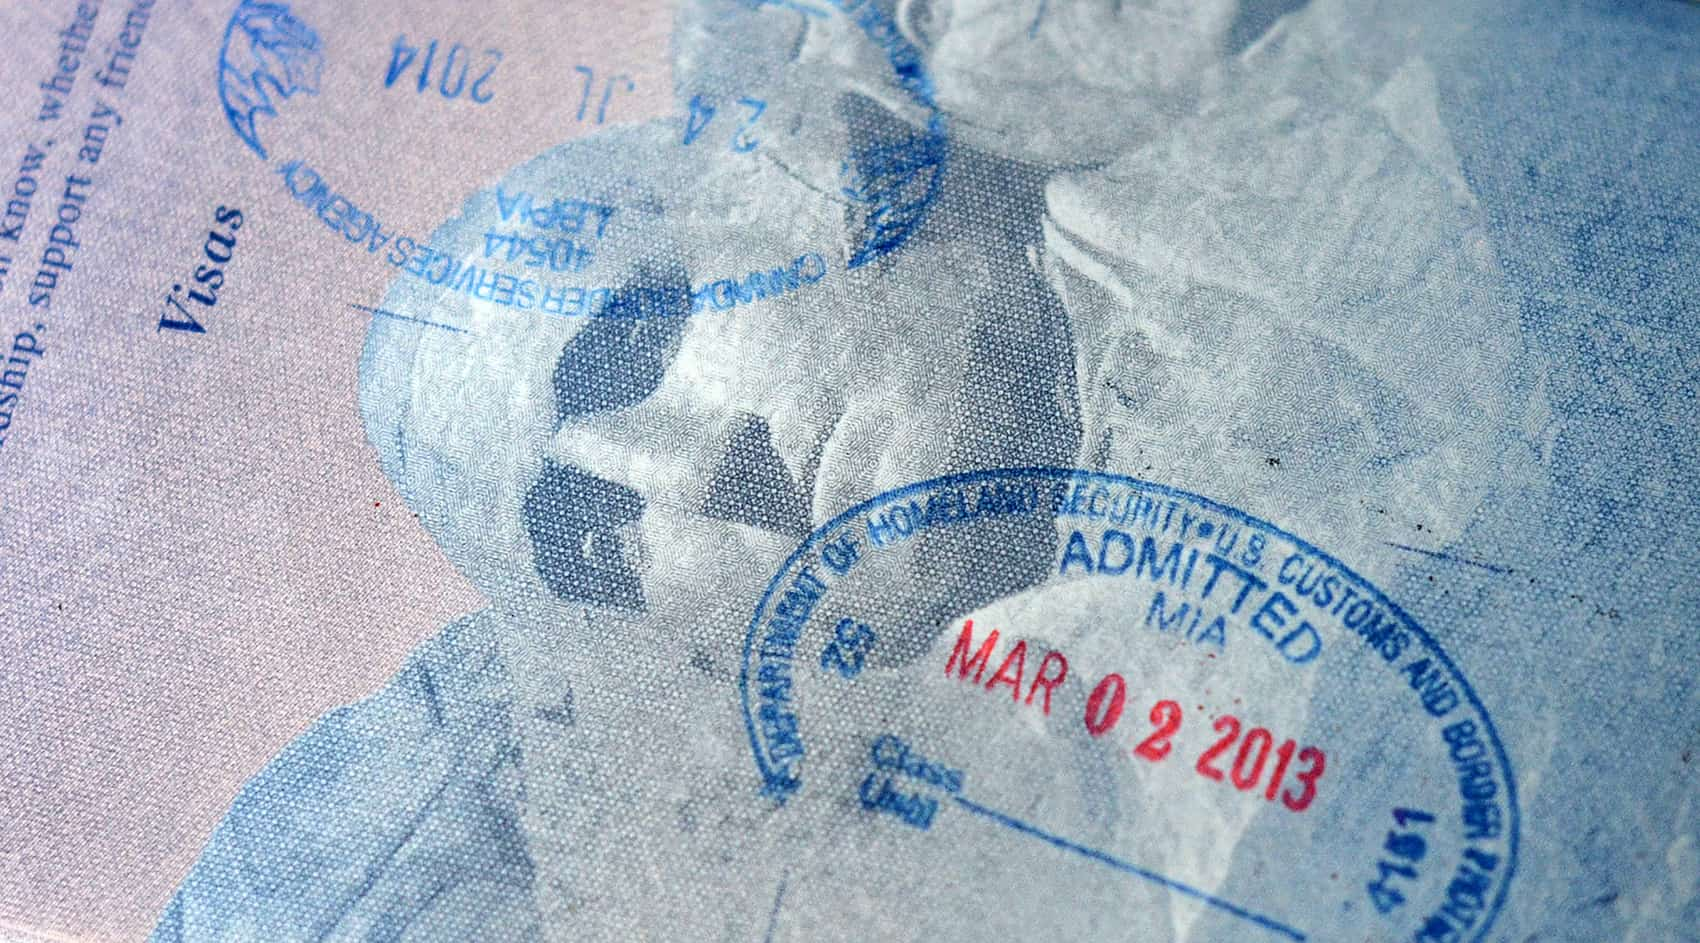 A passport stamp allowing entrance into the United States.